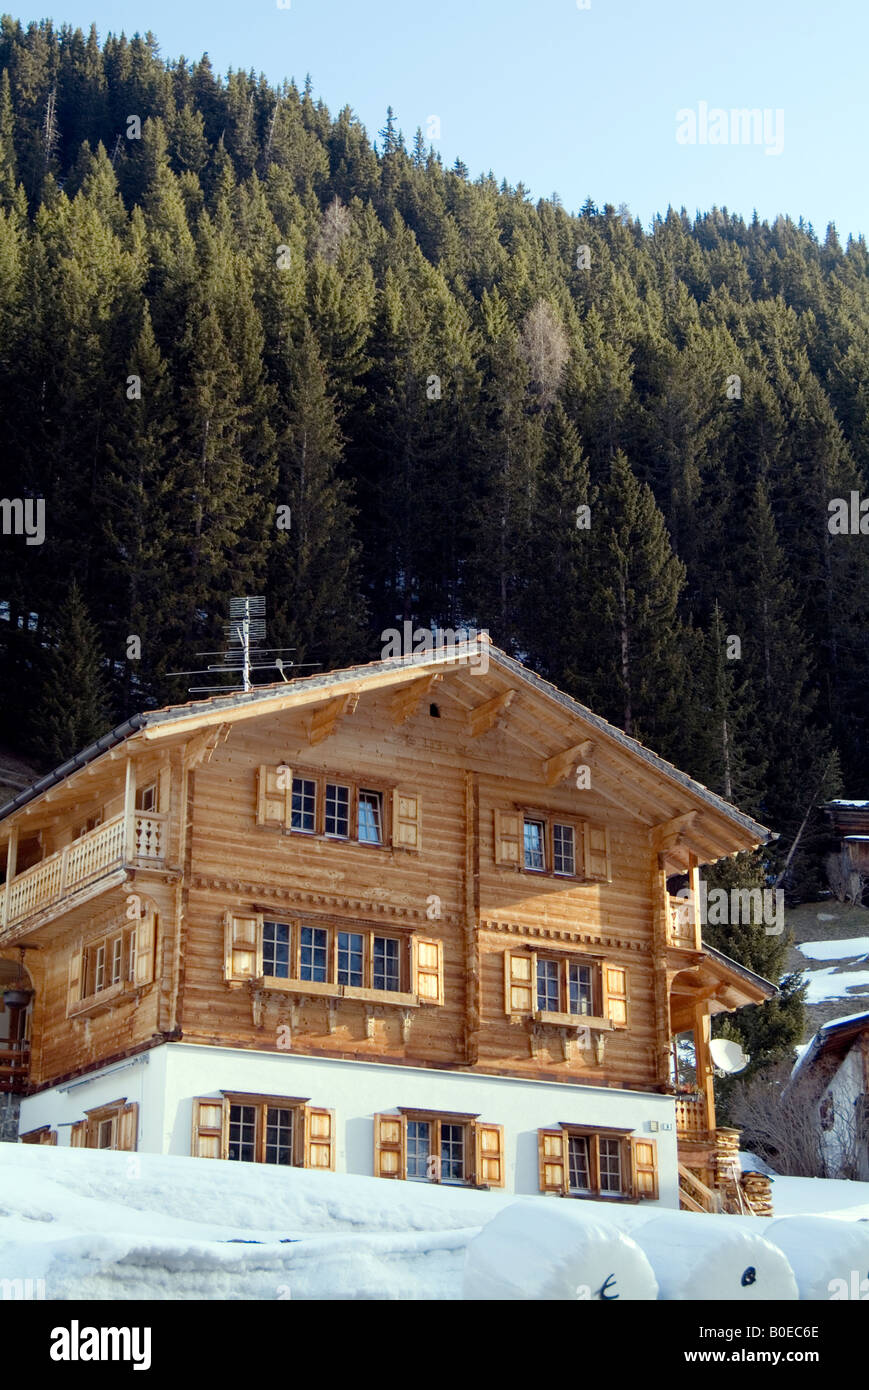 Swiss Ski Lodge Chalet Resort Building Wooden Alps Switzerland Snow Holiday Skiing Wood Construction Log Cabin Luxury